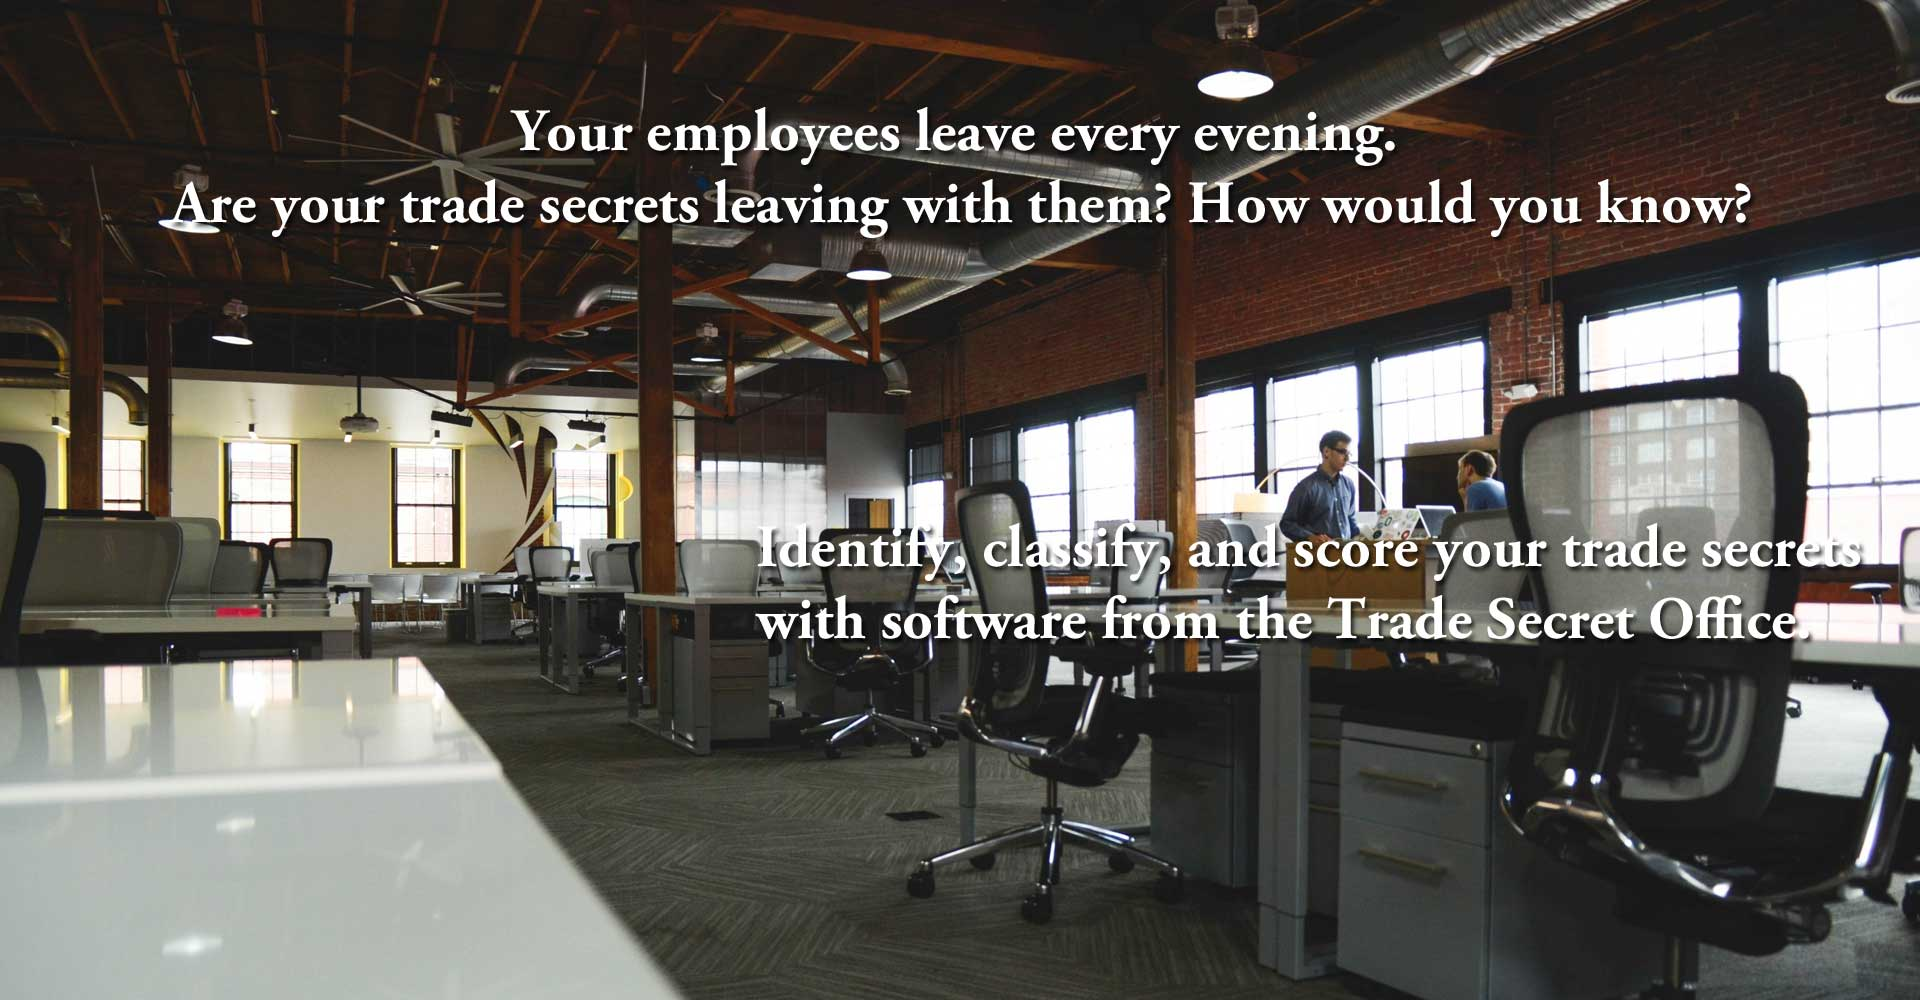 Your employees leave every evening. Are your trade secrets leaving with them? How would you know?